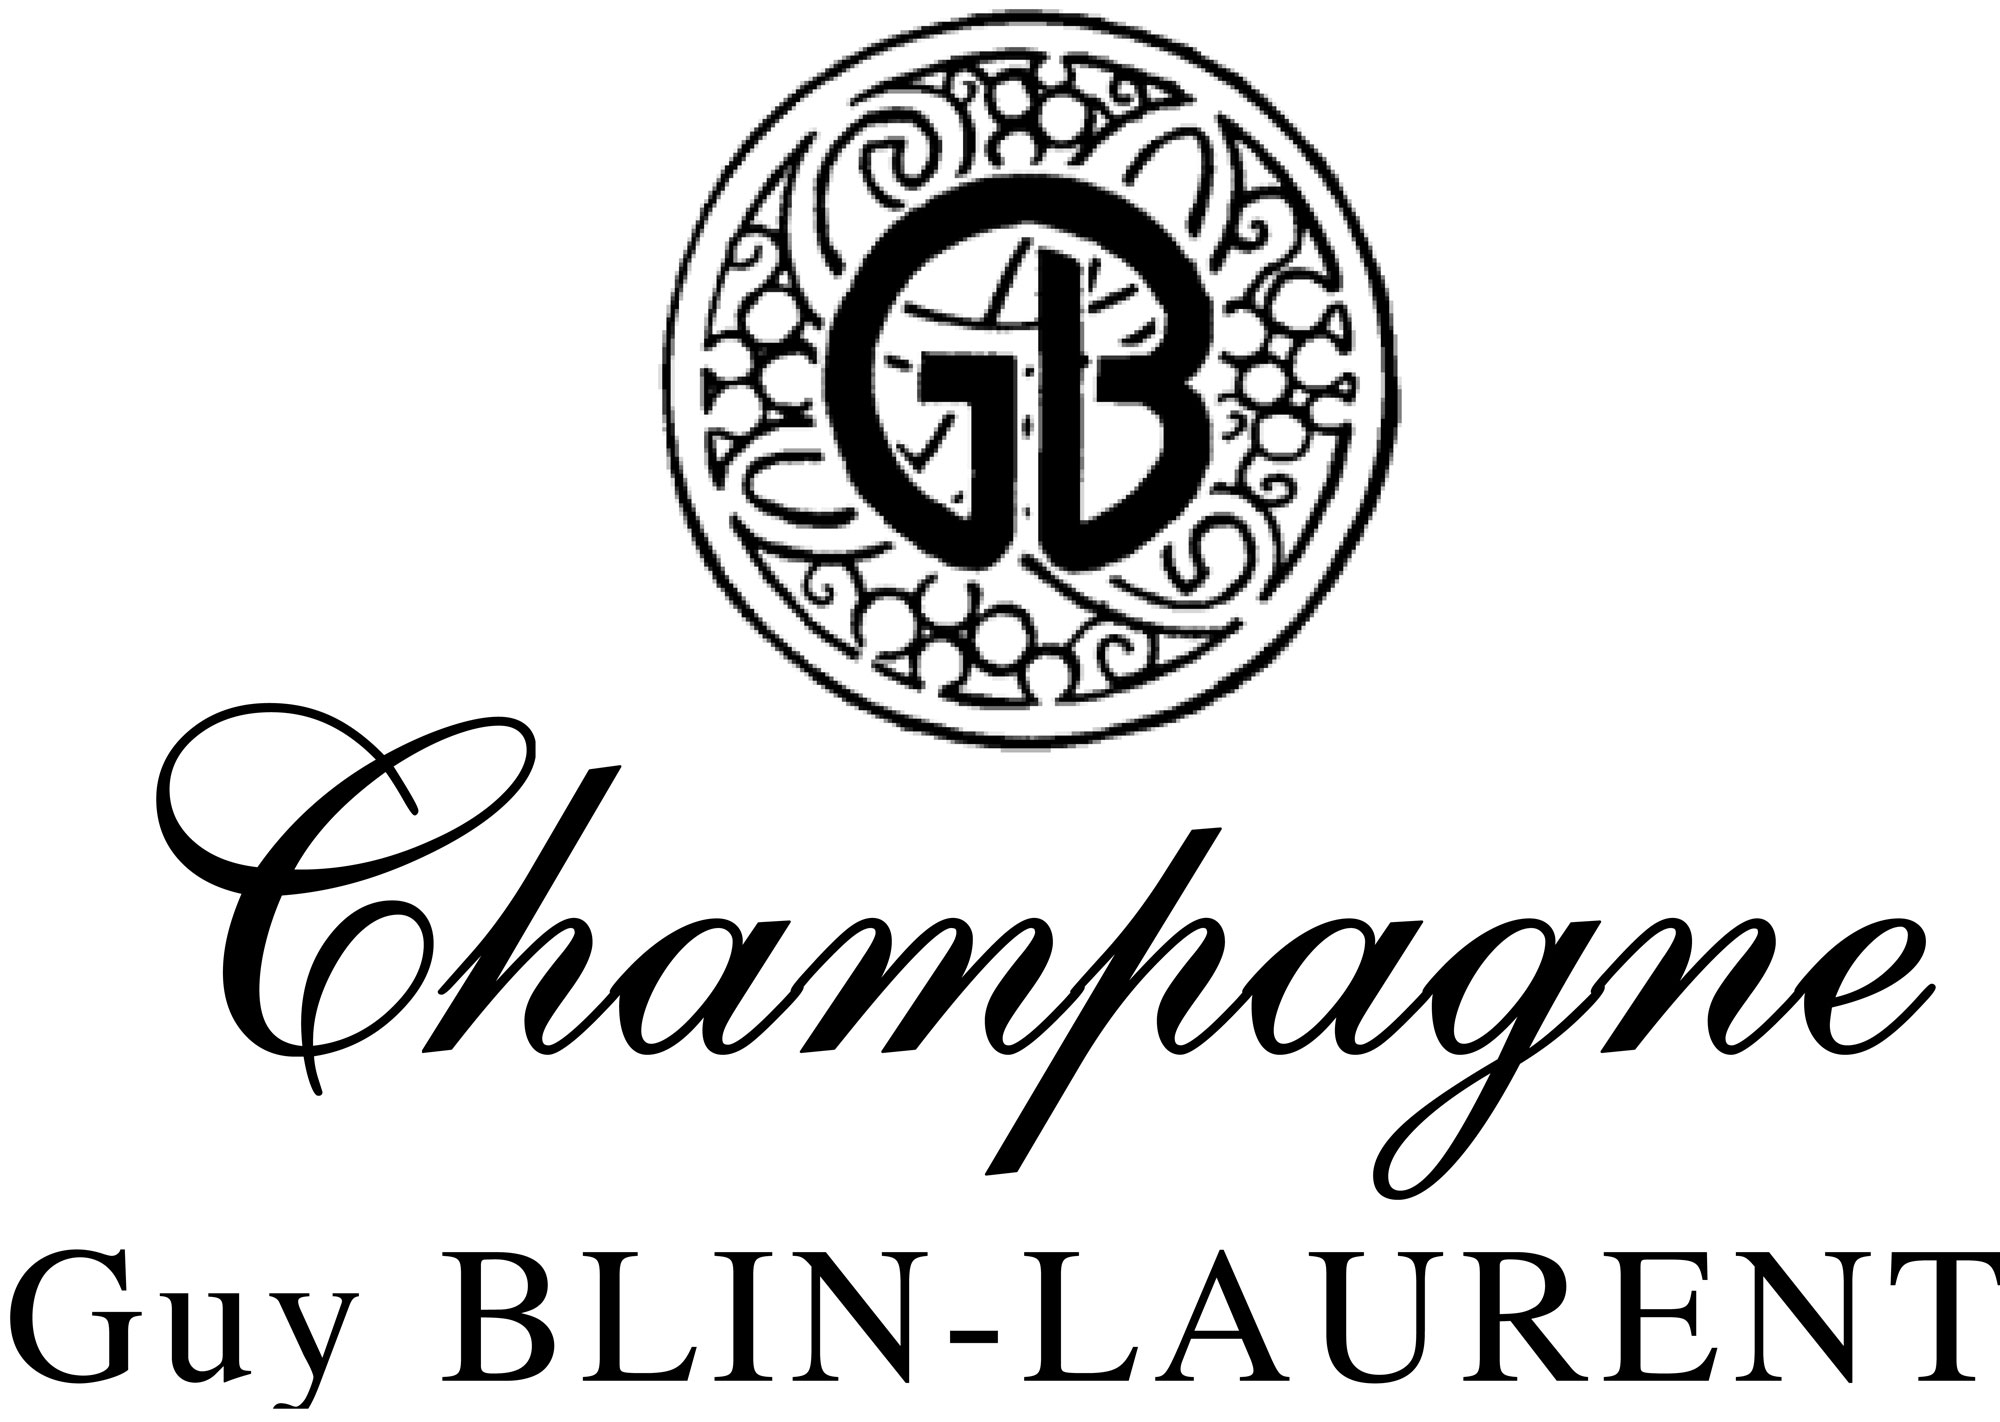 Guy Blin-Laurent Champagne